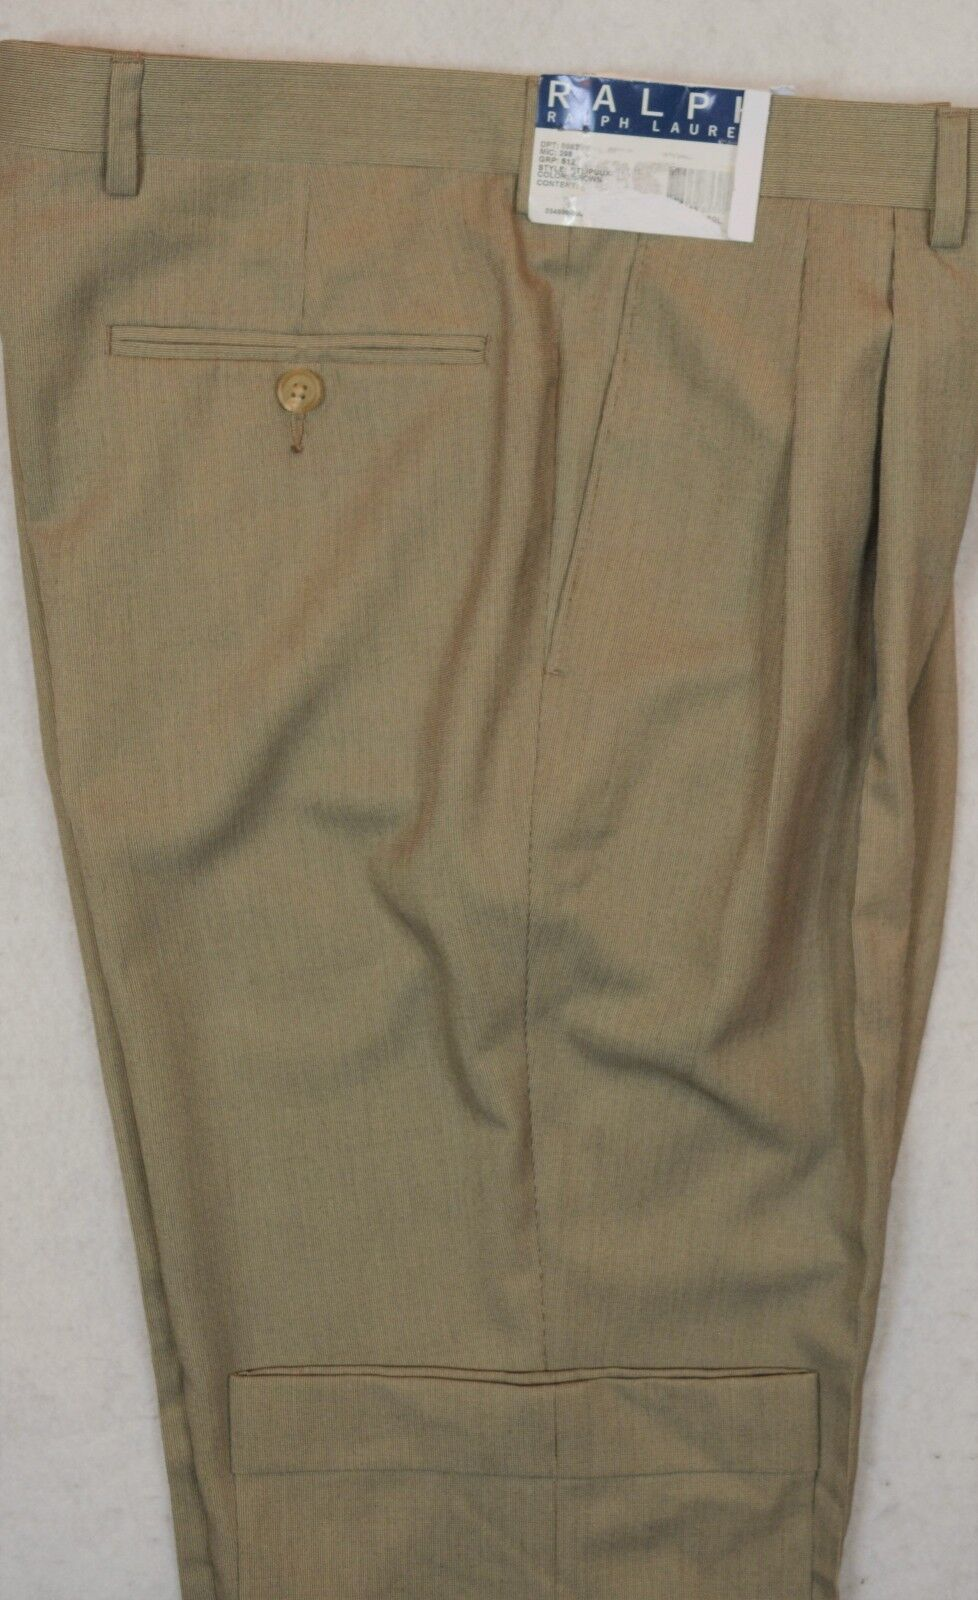 Ralph Lauren Modern Fit Brown Dress Pant Size 34 30 NWT